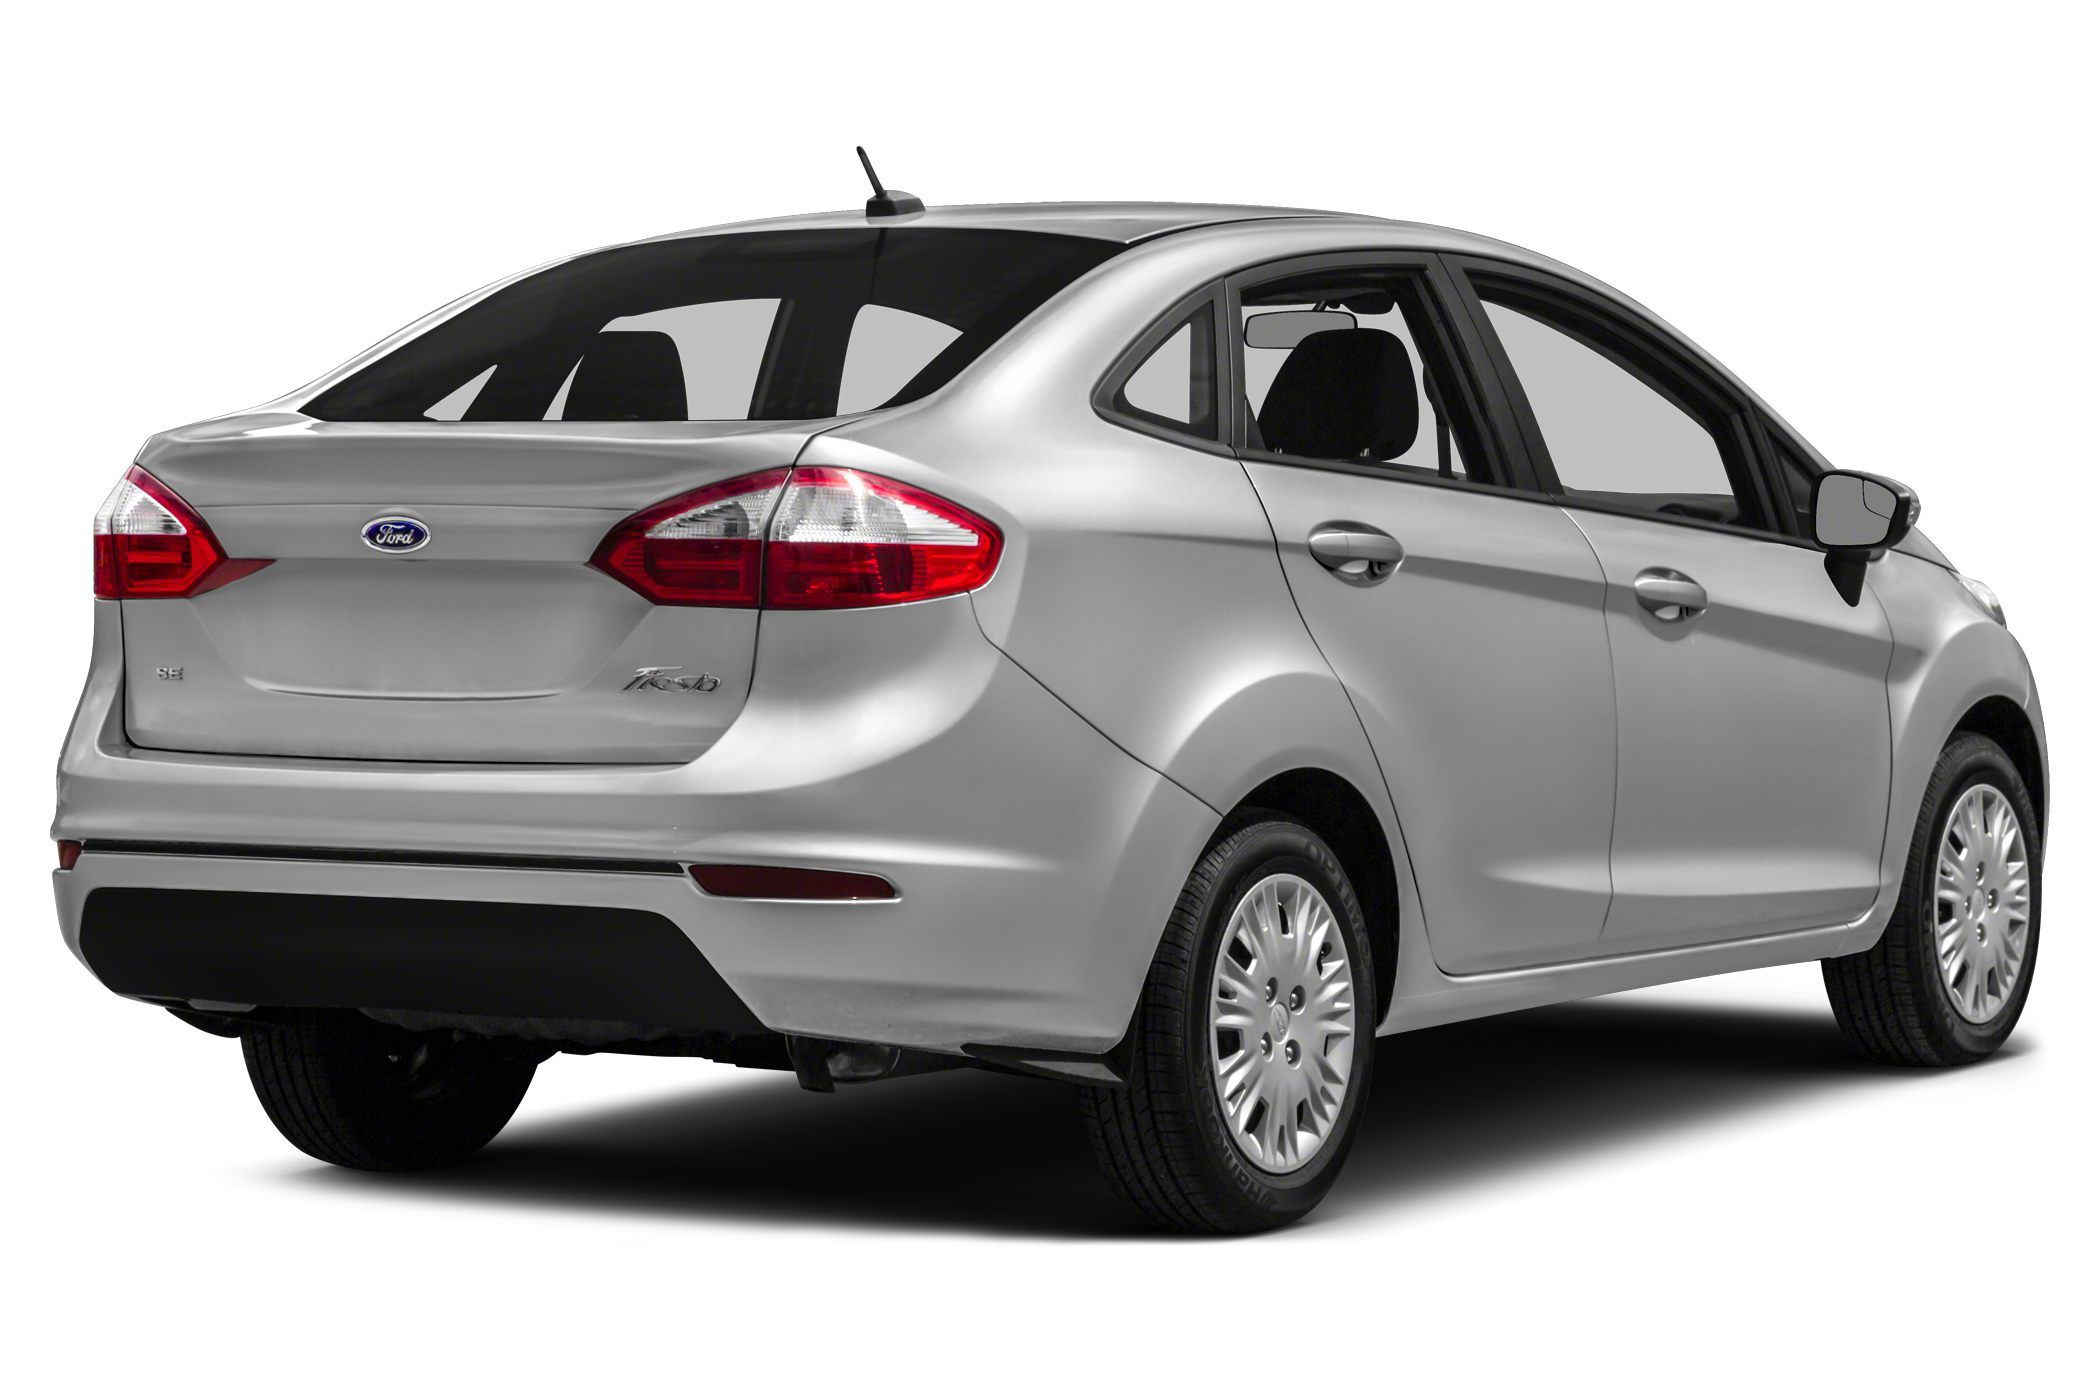 Pin by Kimala Hitter Coleman on Ford Fiesta 2016 | Ford